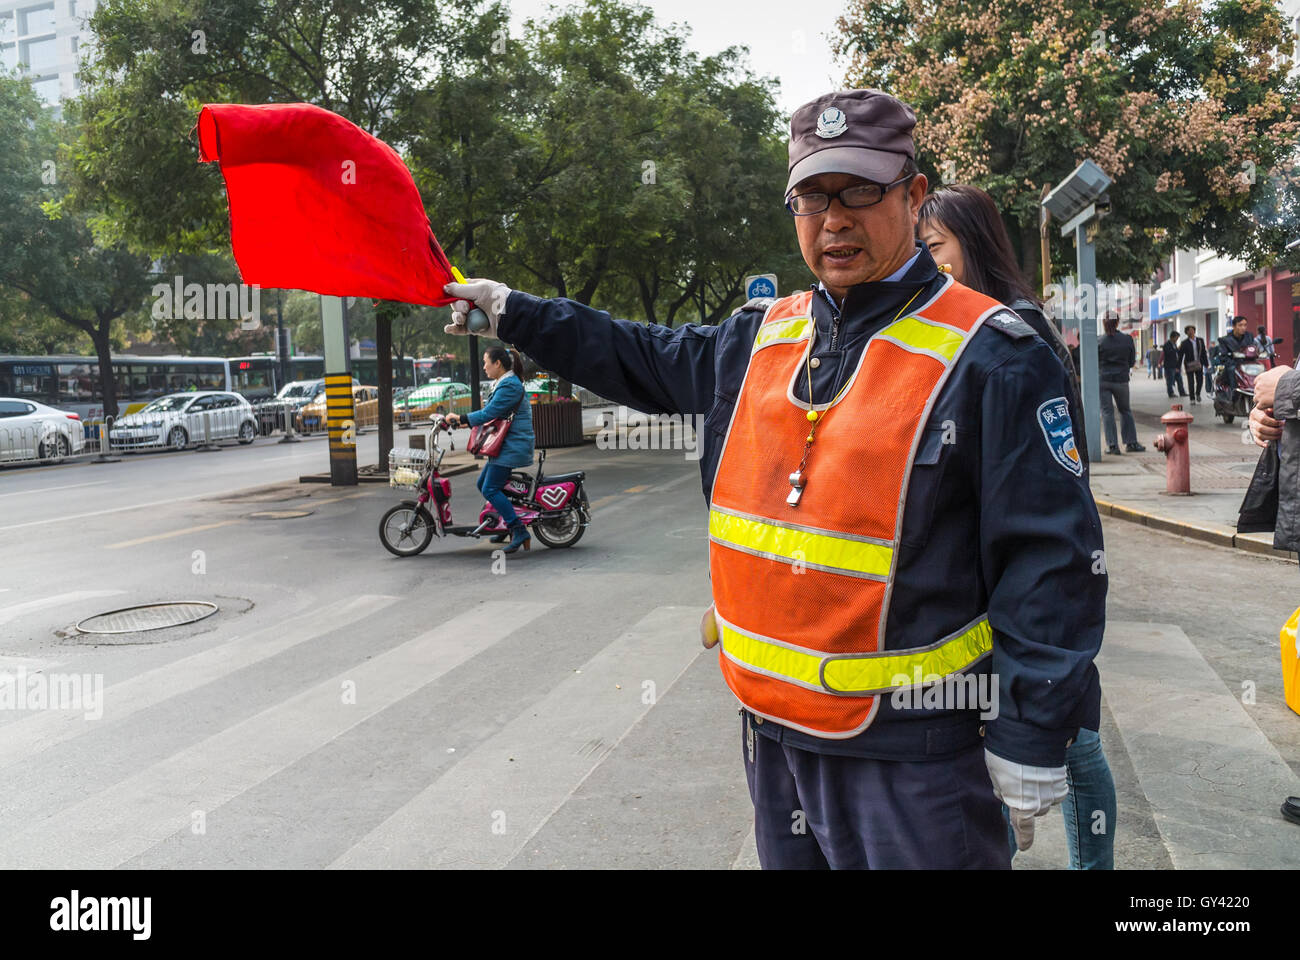 Chinese Traffic Warden is working at intersection in Xian, Shaanxi Province, China. - Stock Image